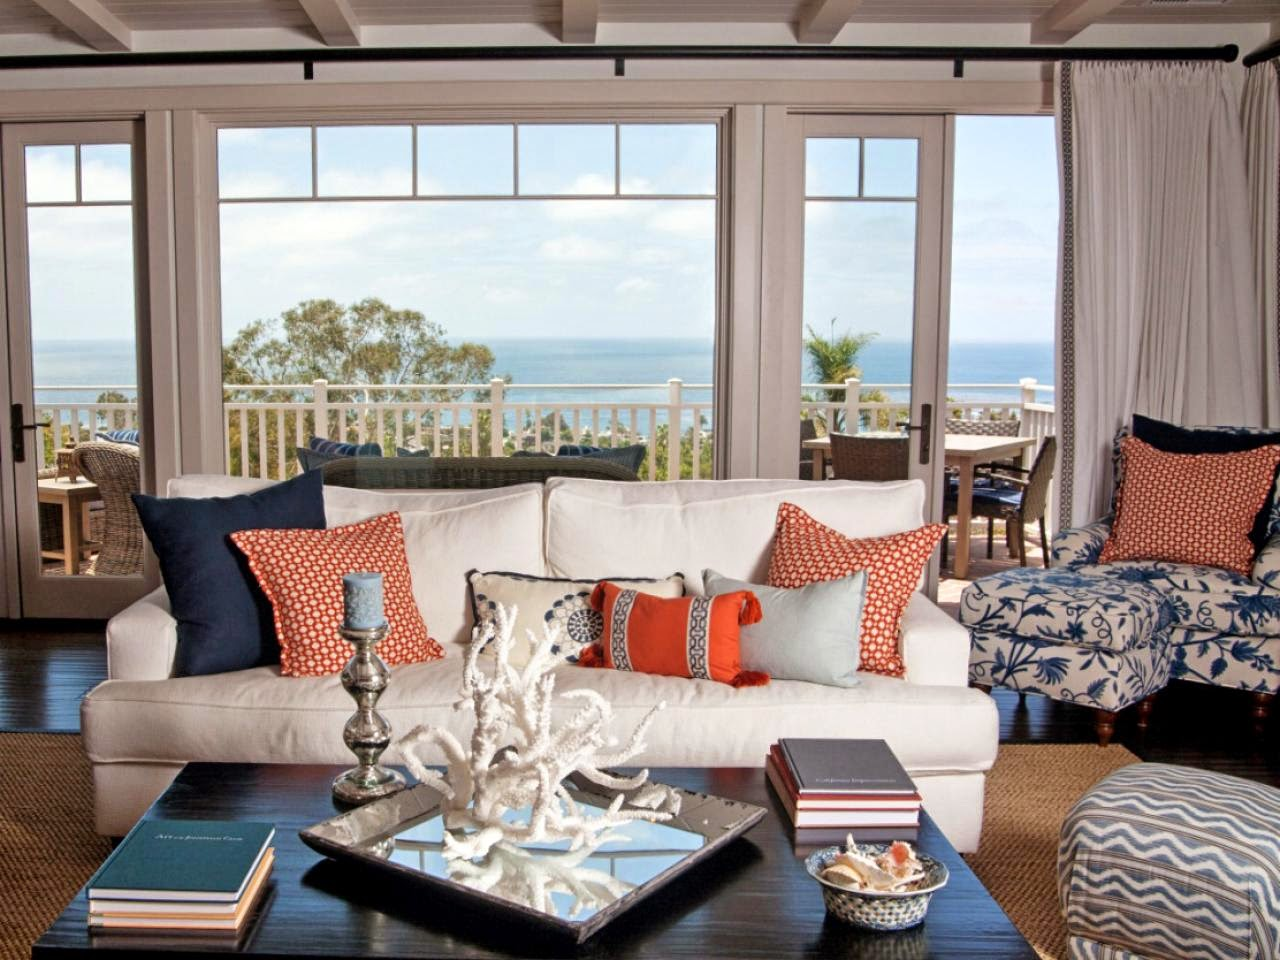 Bedroom Decorating Ideas Blue And Orange everything coastal.: orange crushing - 10 coastal decorated spaces